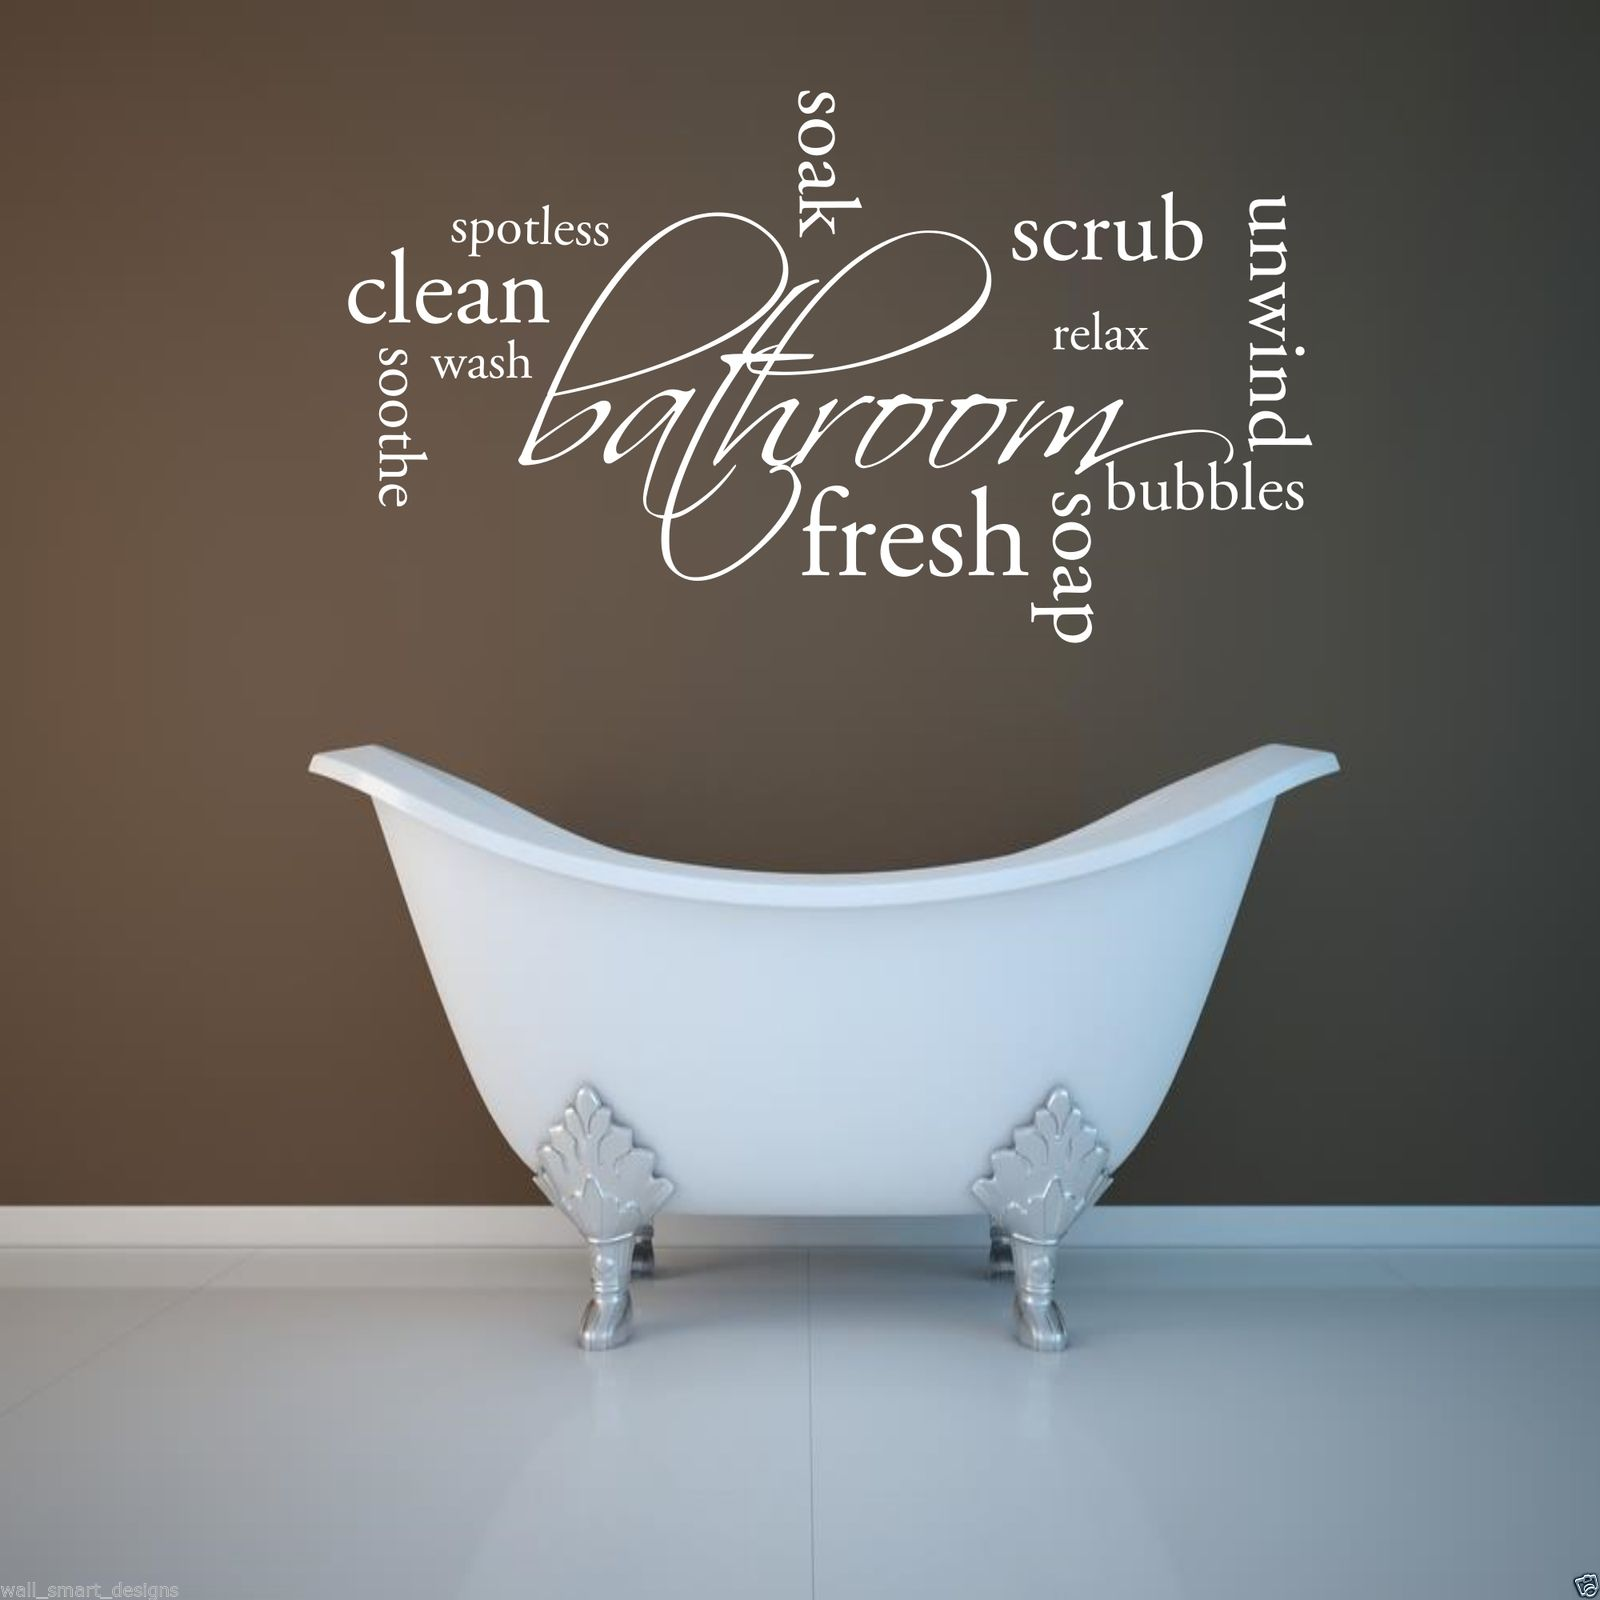 Wall Art Stickers For Bathroom Relax Soap Bathroom Wall Sticker Quote Decal Mural Stencil